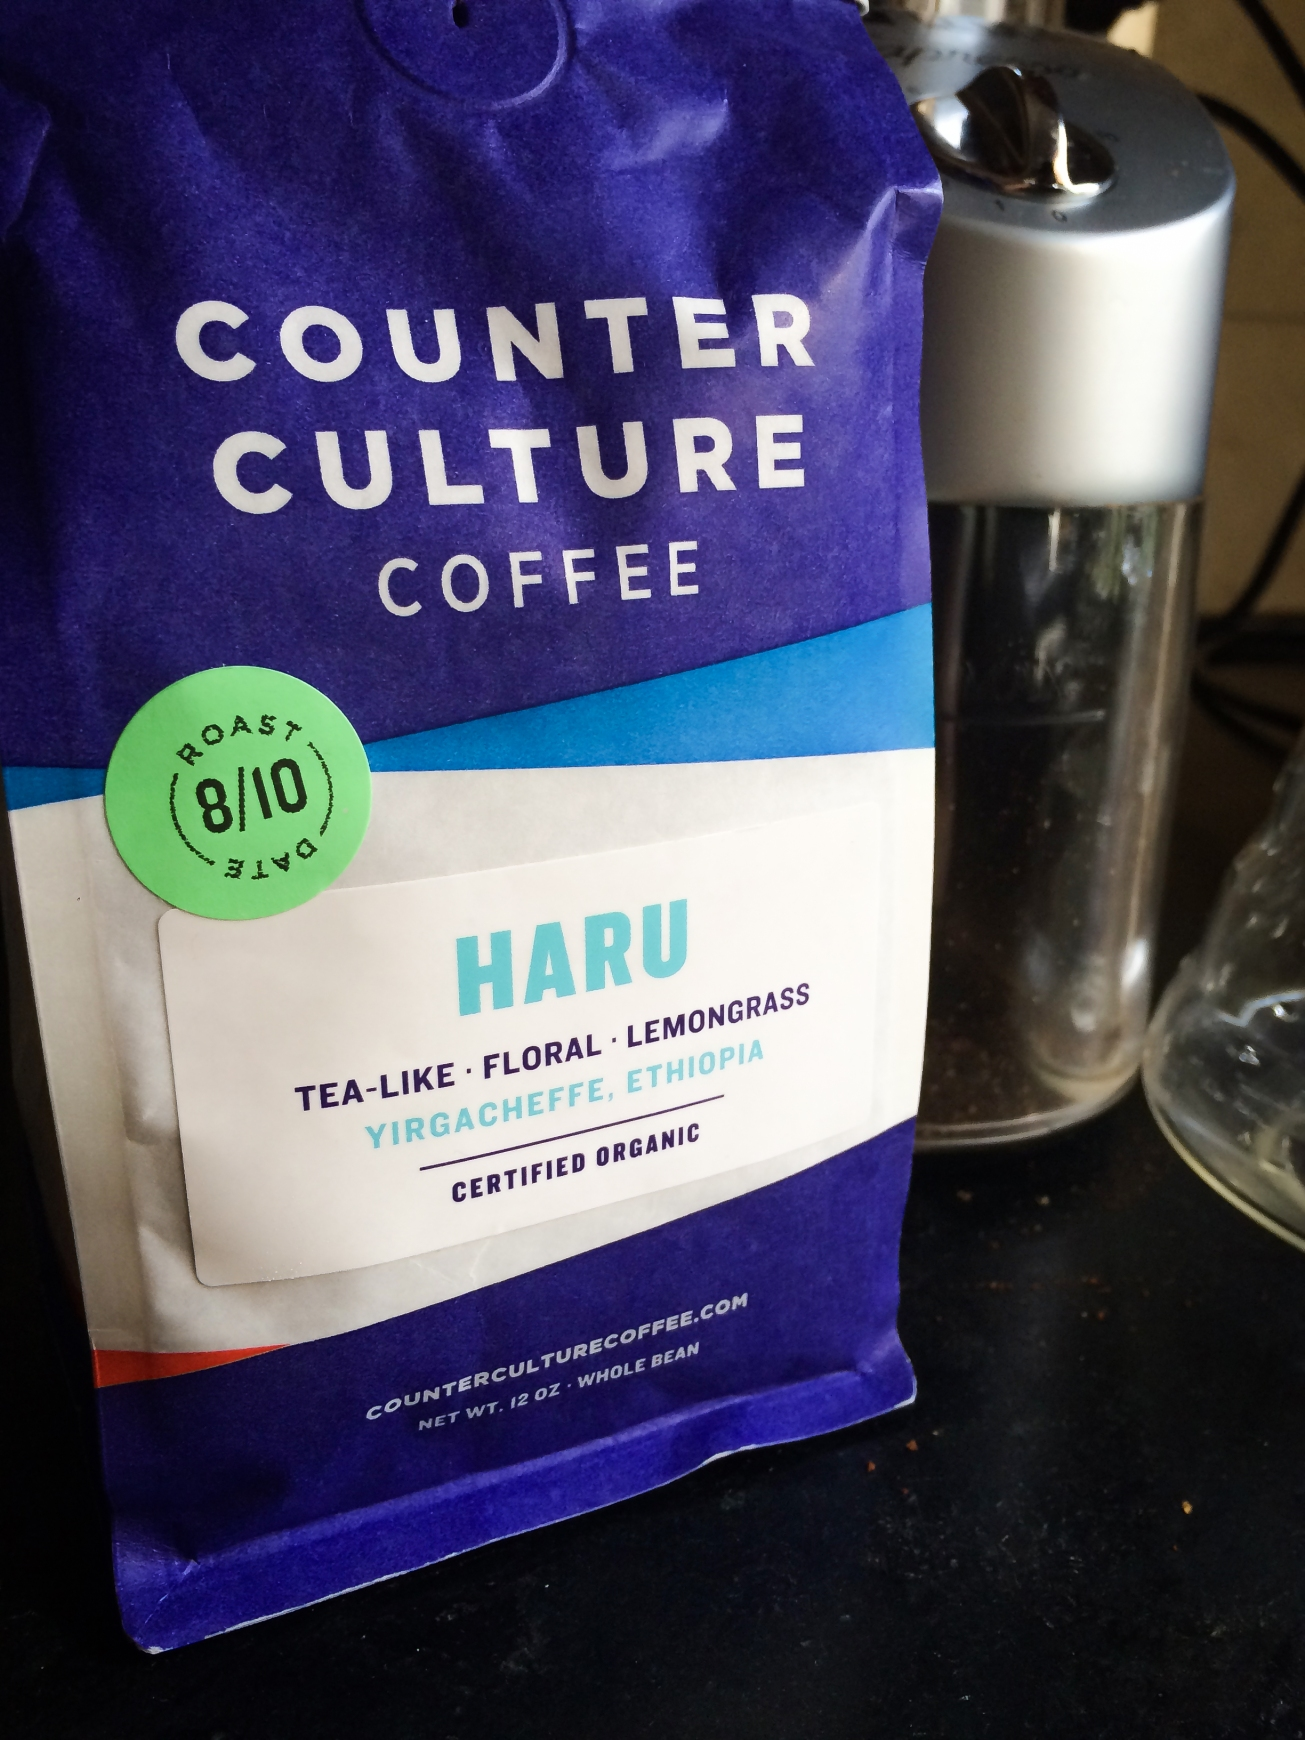 Counter Culture Haru